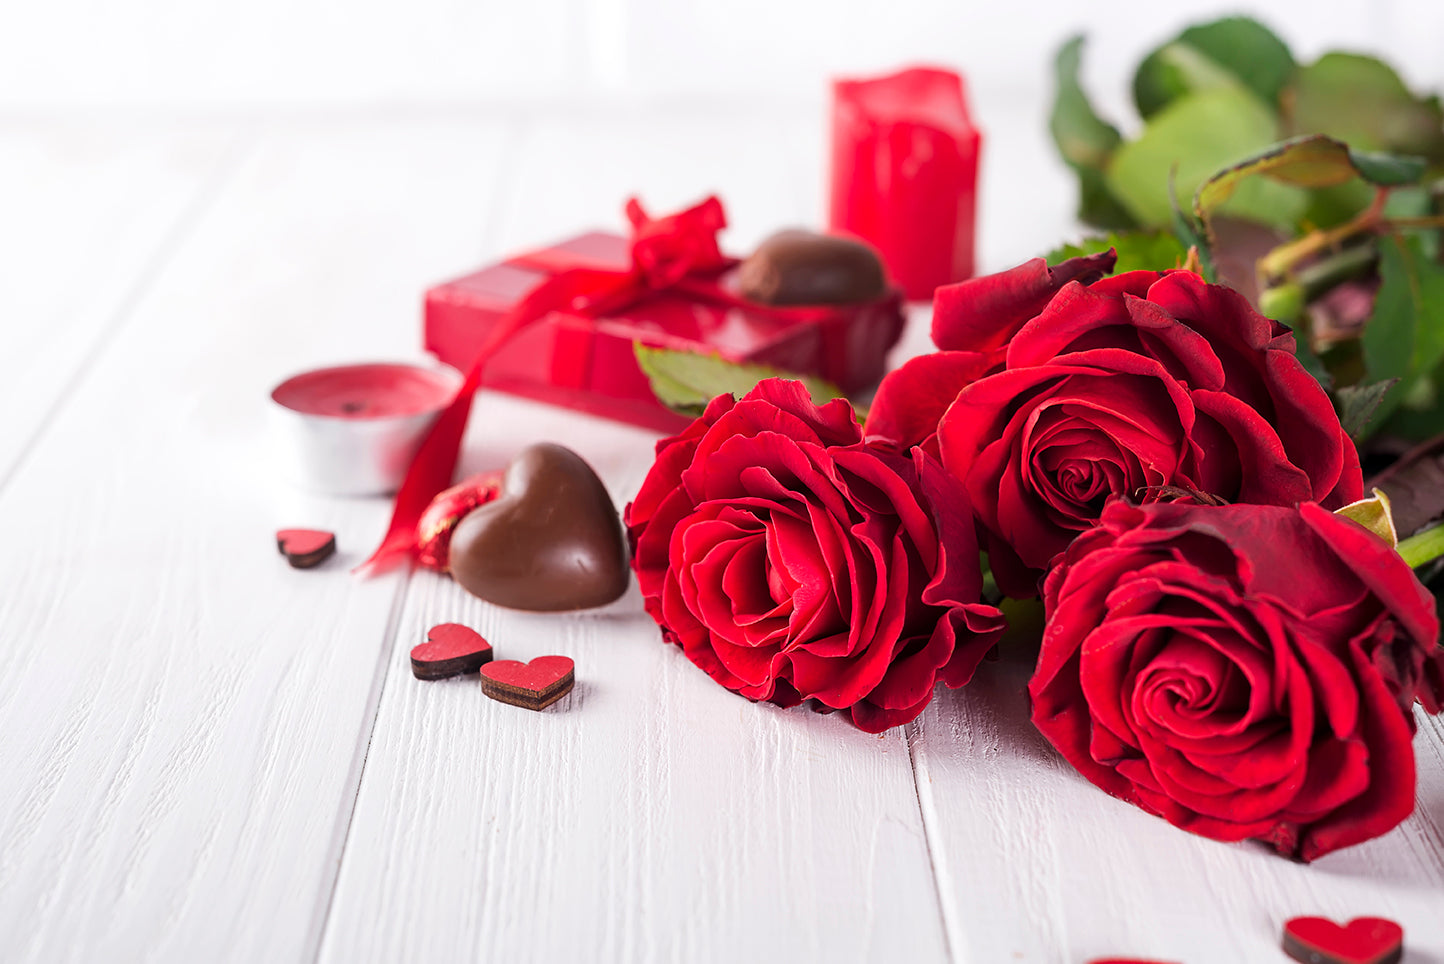 Teddy Bears, Chocolates & Roses... Oh My!